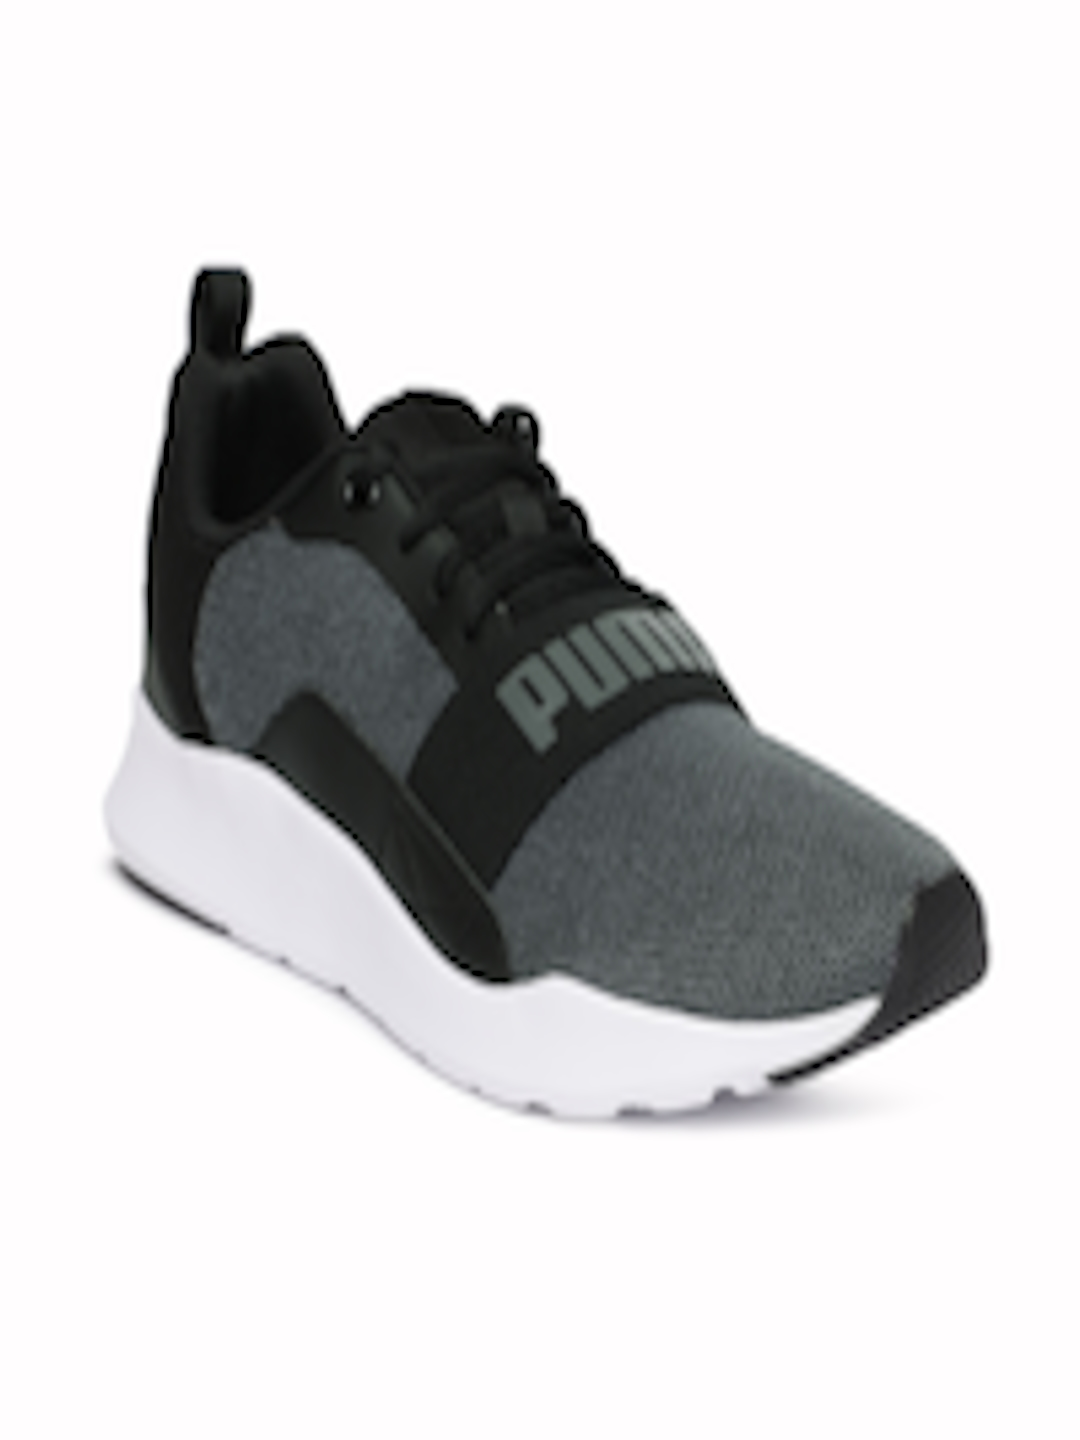 cfec505cf6d Buy Puma Men Black Wired Knit Sneakers - Casual Shoes for Men 6816084